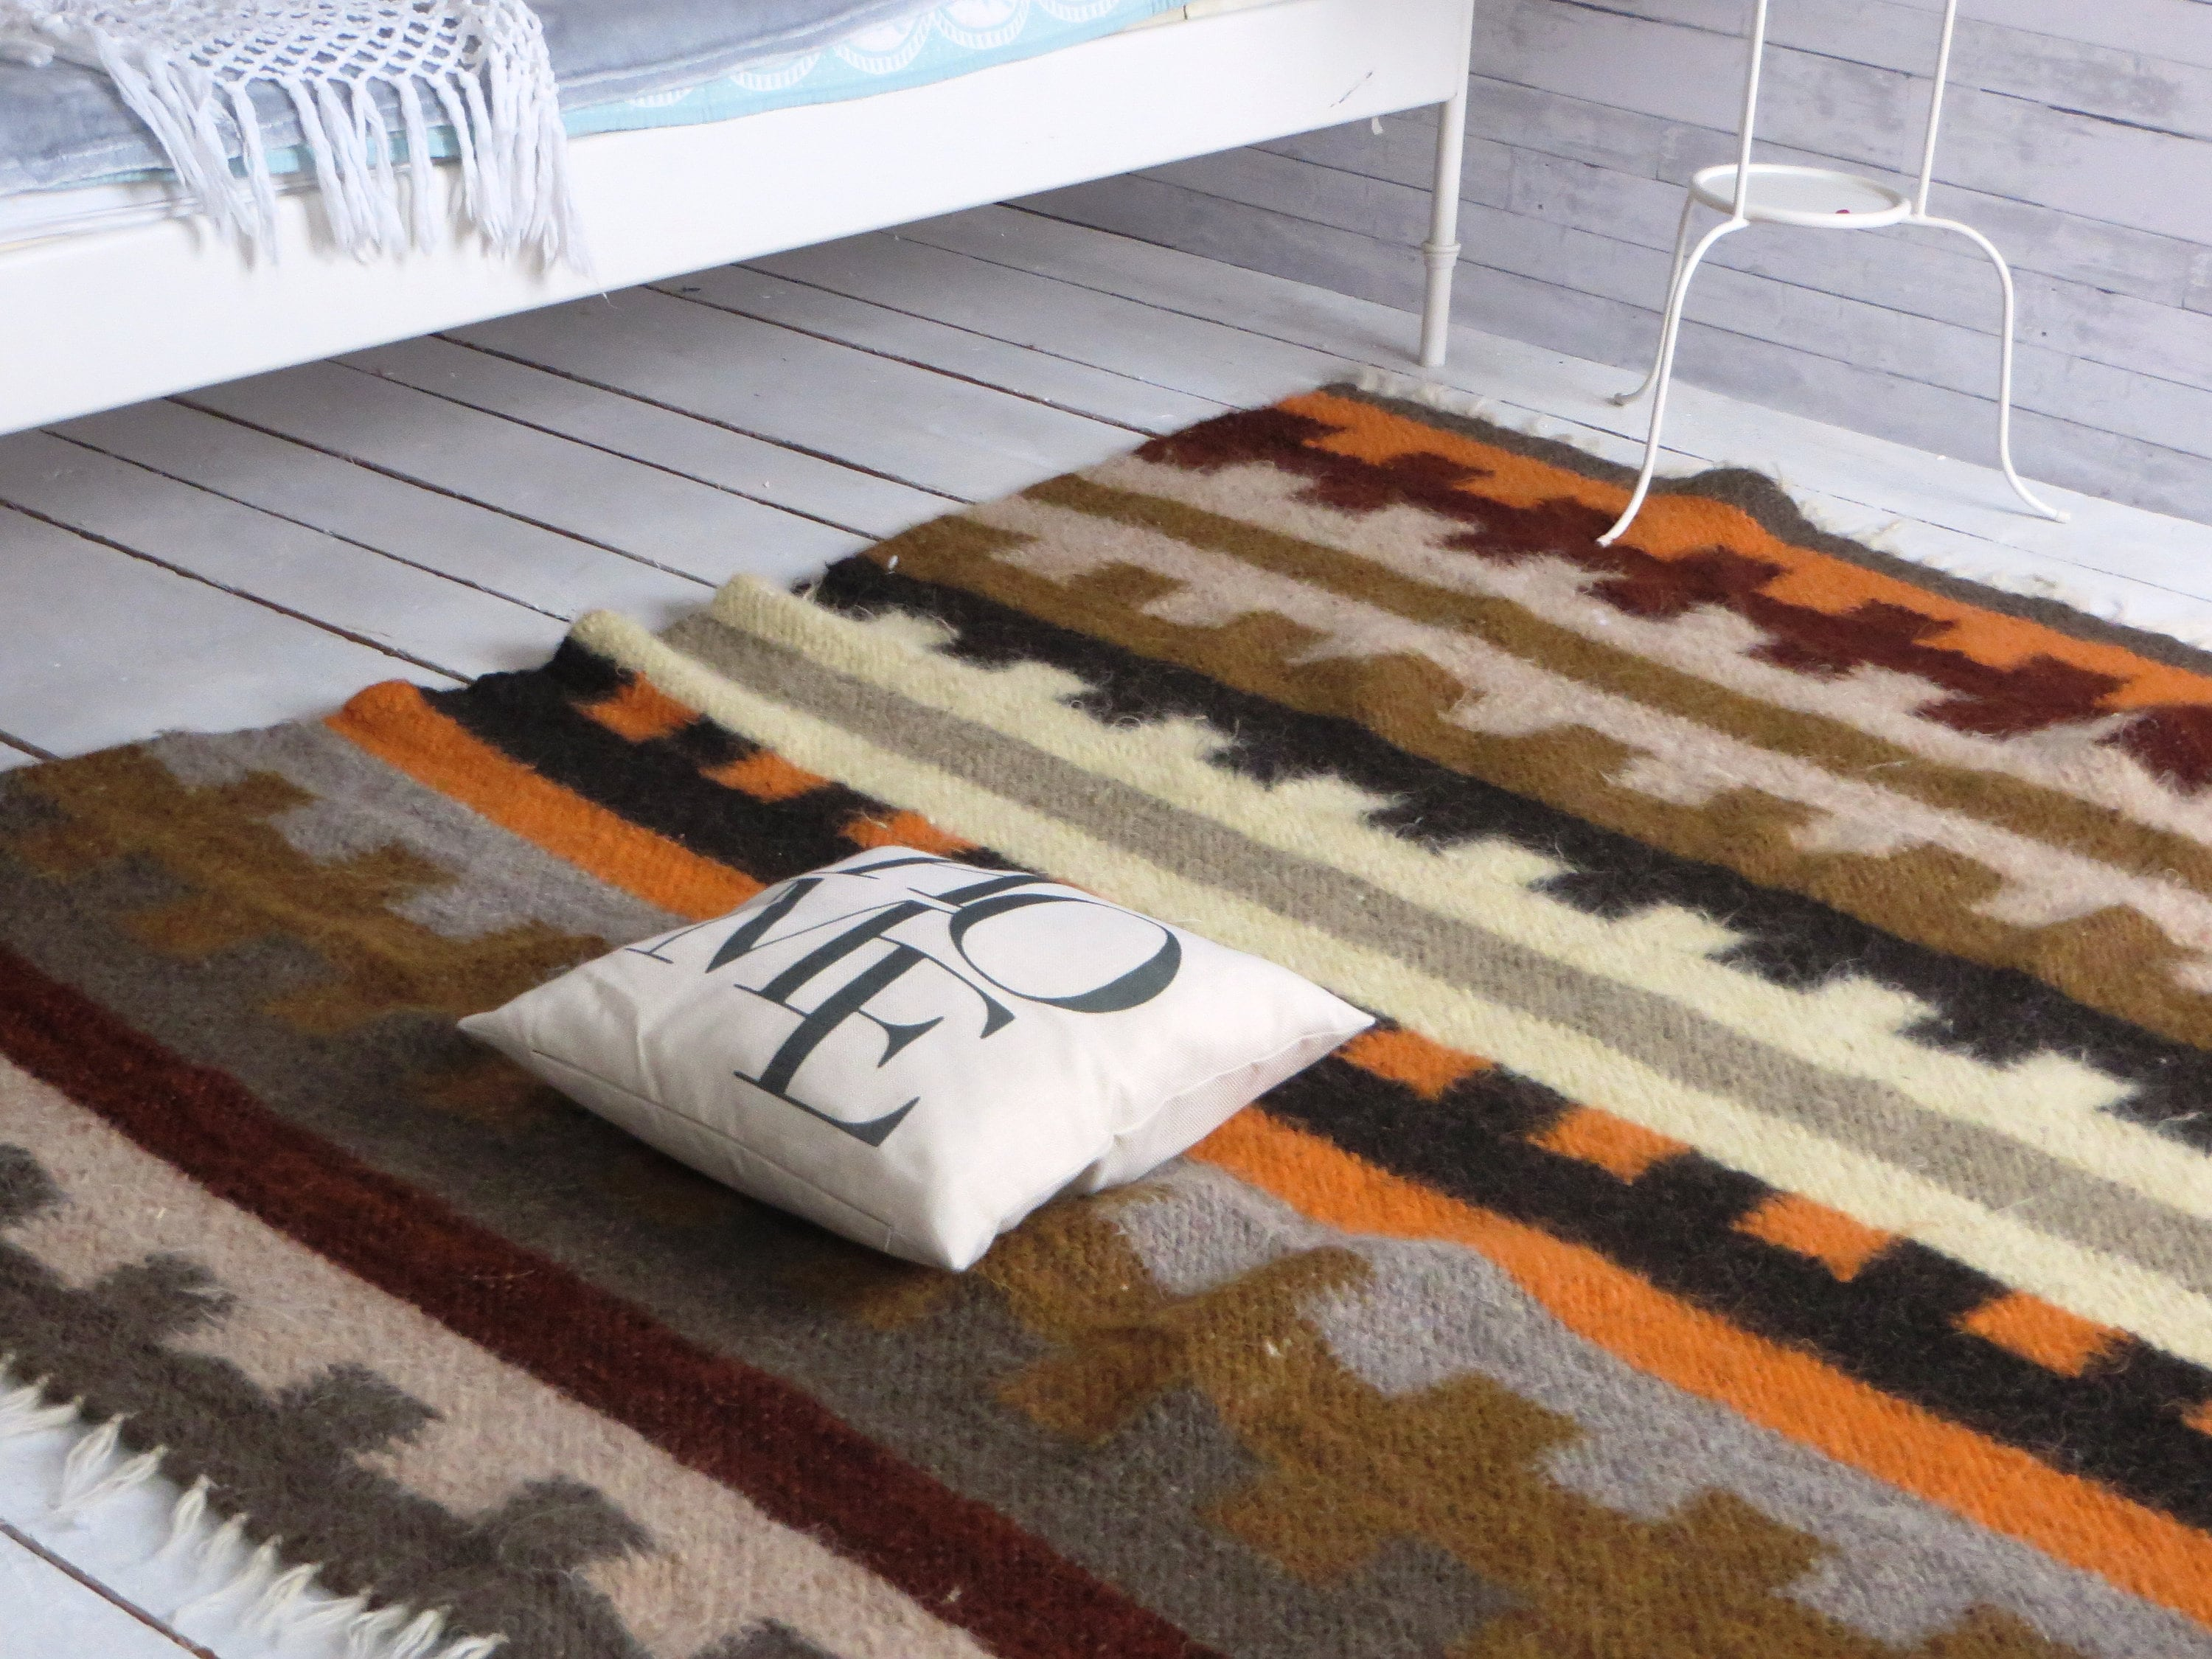 Wool Rug Bedroom Rug Woven Rug Organic Wool Area Rug Hand Woven Wool Area Rug Wool Rugs Home Living Wool Carpet Living Room Rug Gift For Mom